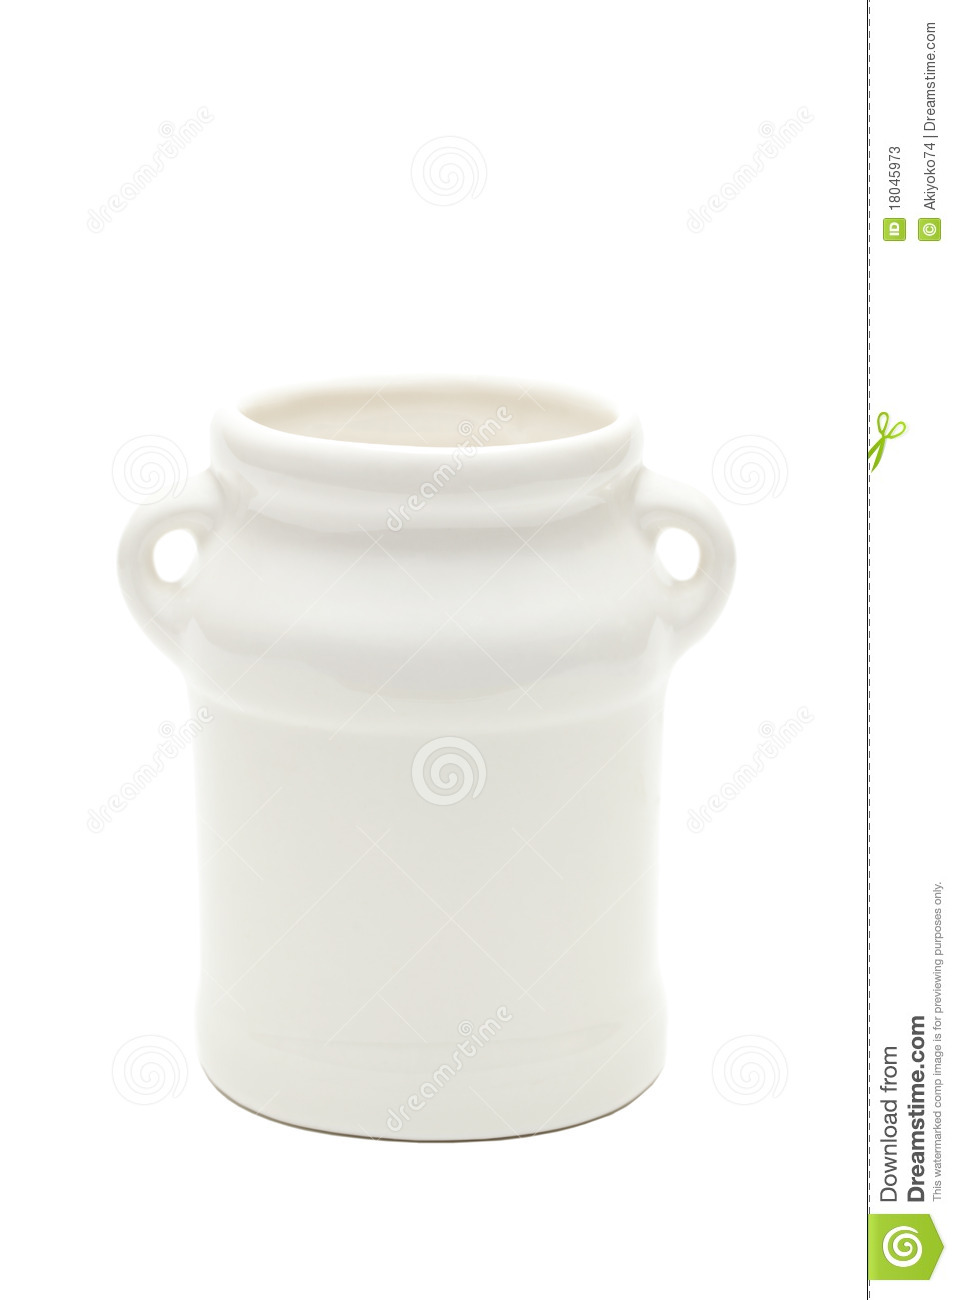 Decorative Milk Urn Milk Urn Stock Image Image Of Antique Decorative Ancient